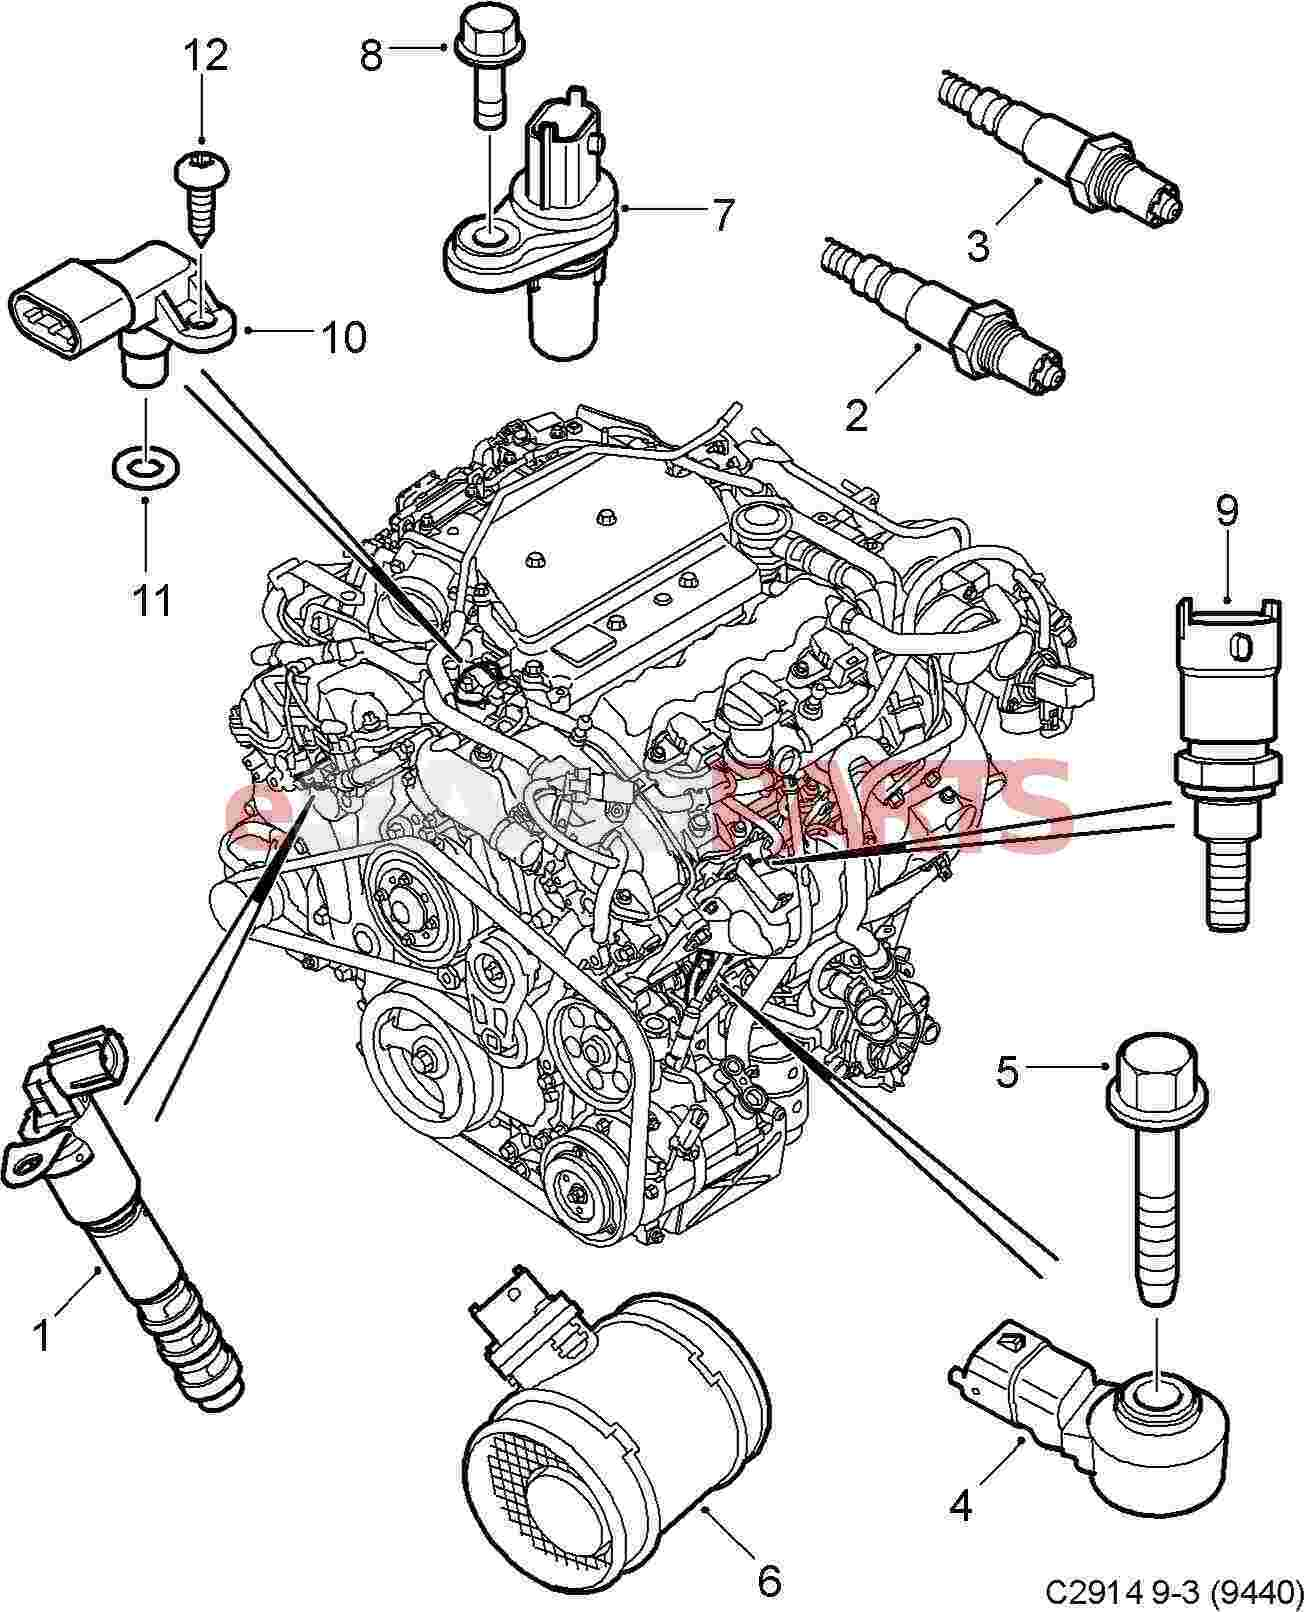 Audi Q7 Tdi Fuel Filter Location